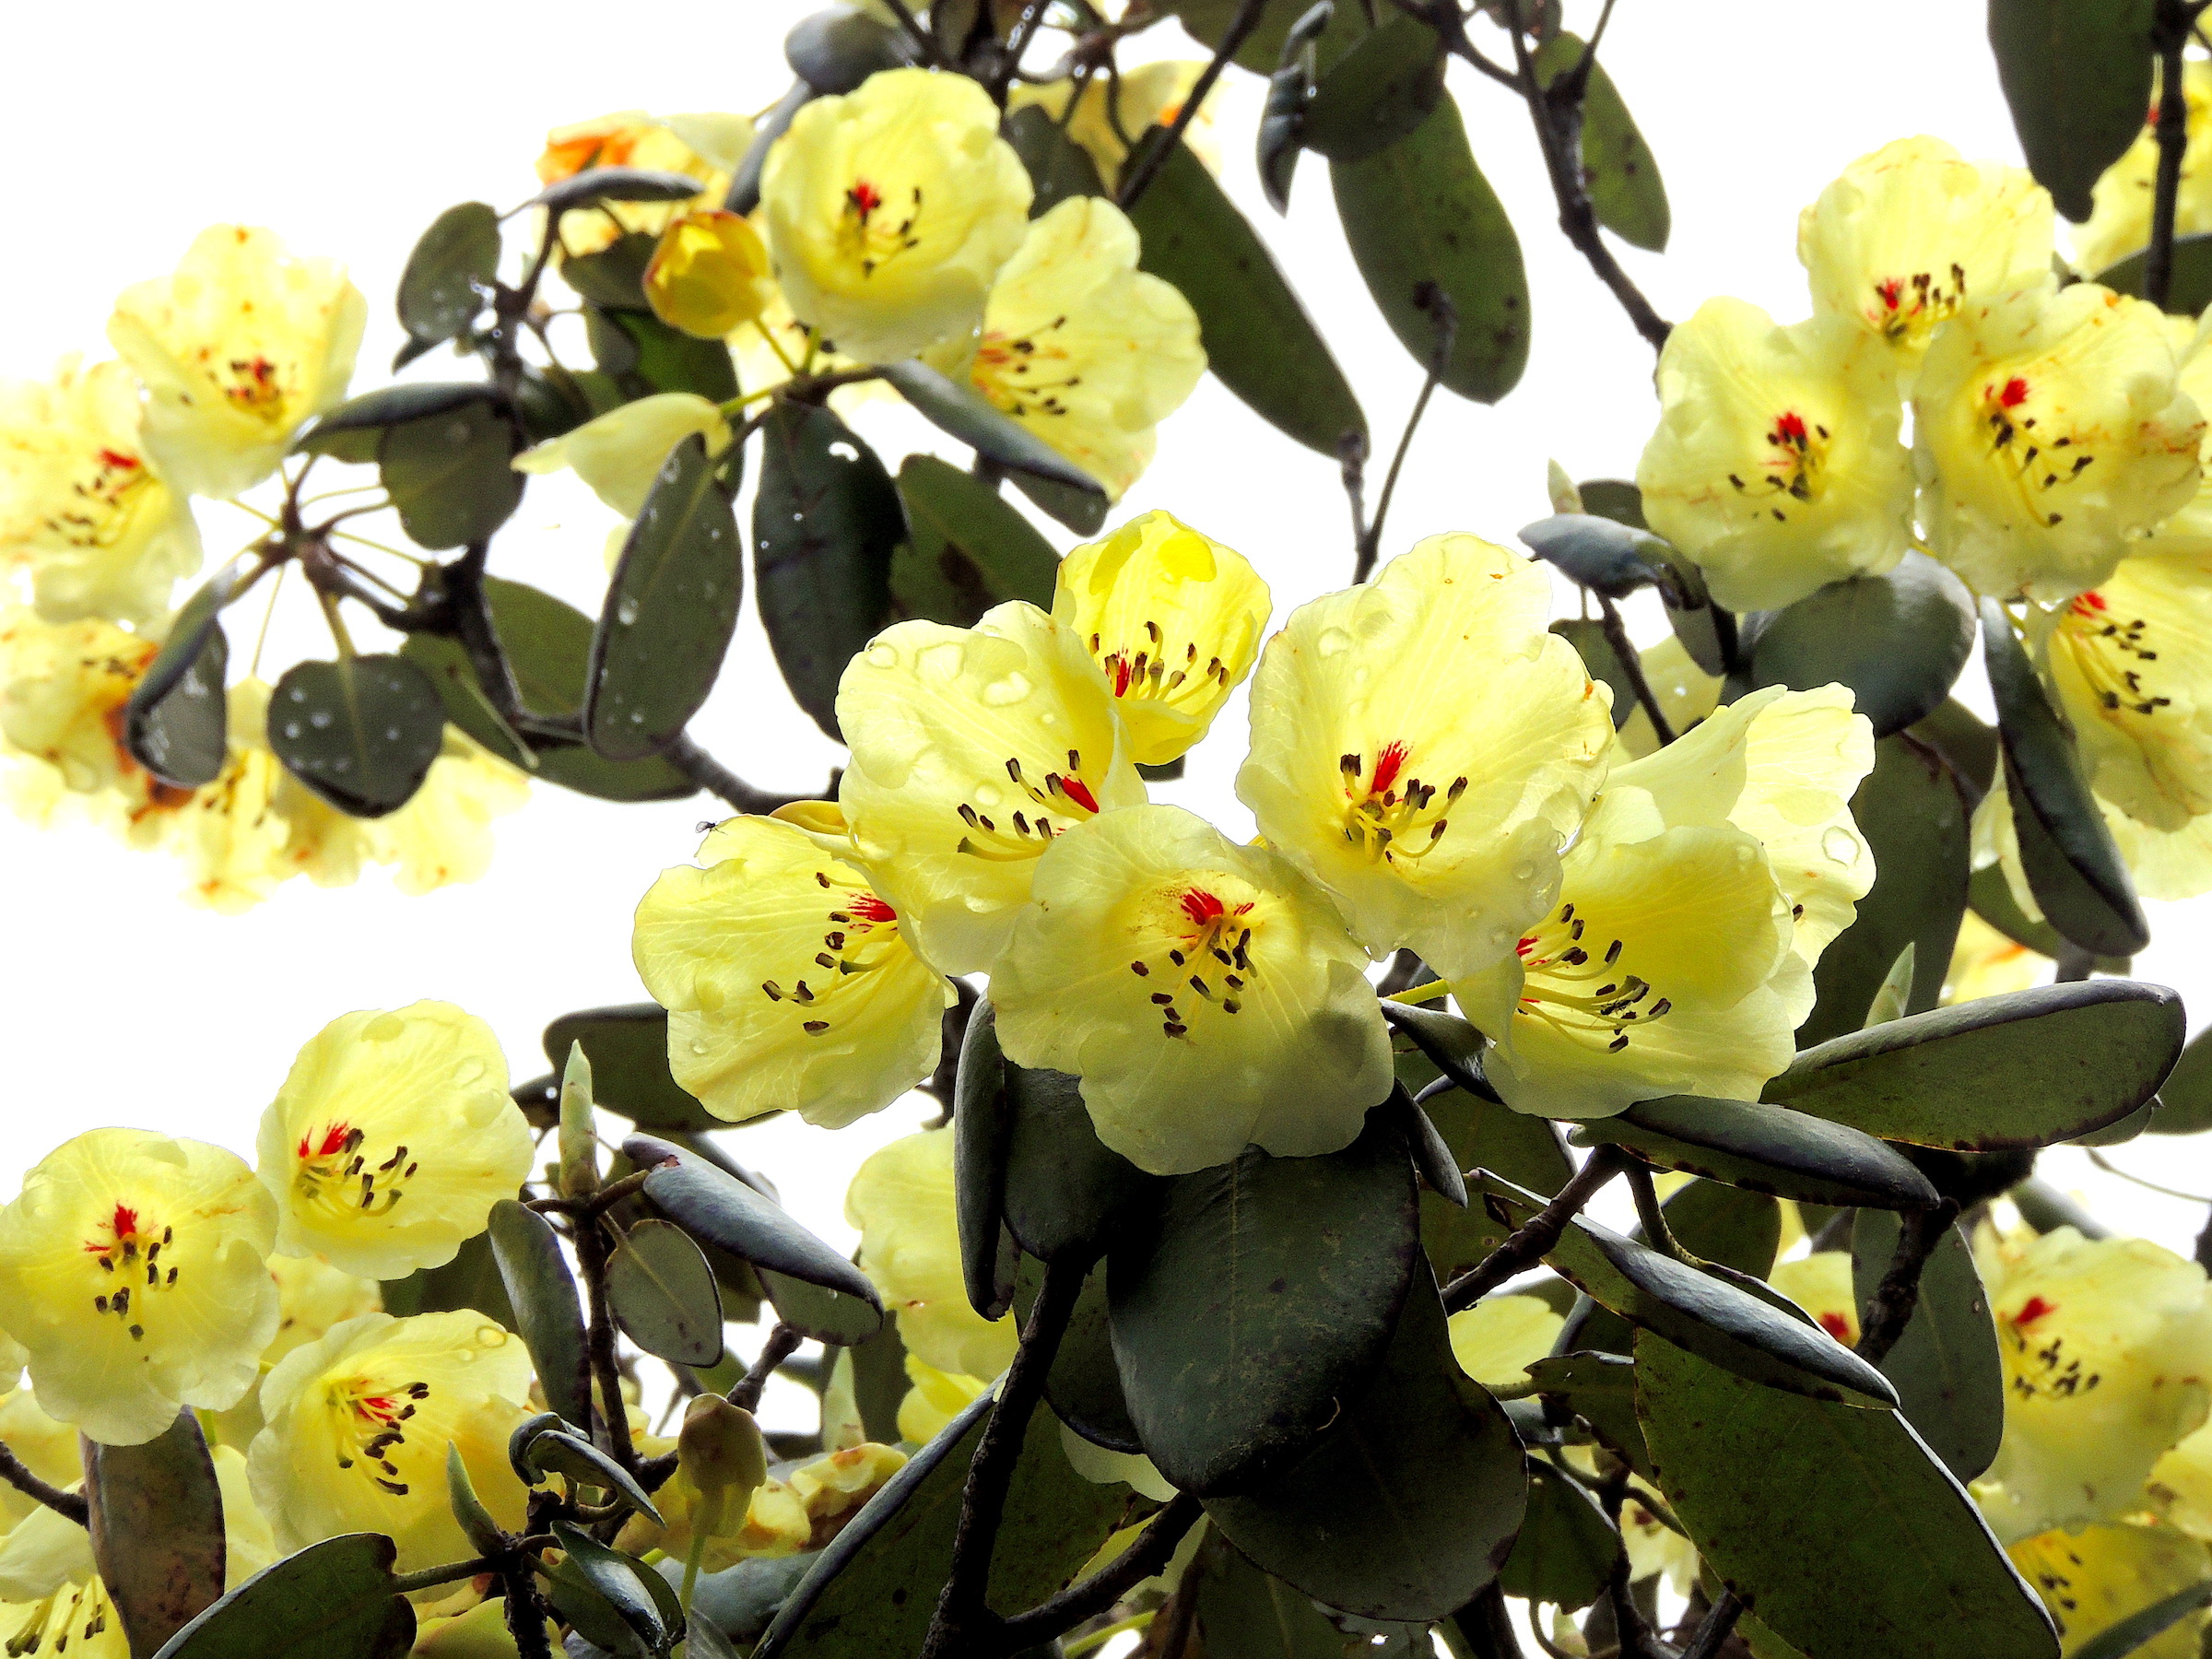 Rhododendrons: Superflowers of the Himalayas